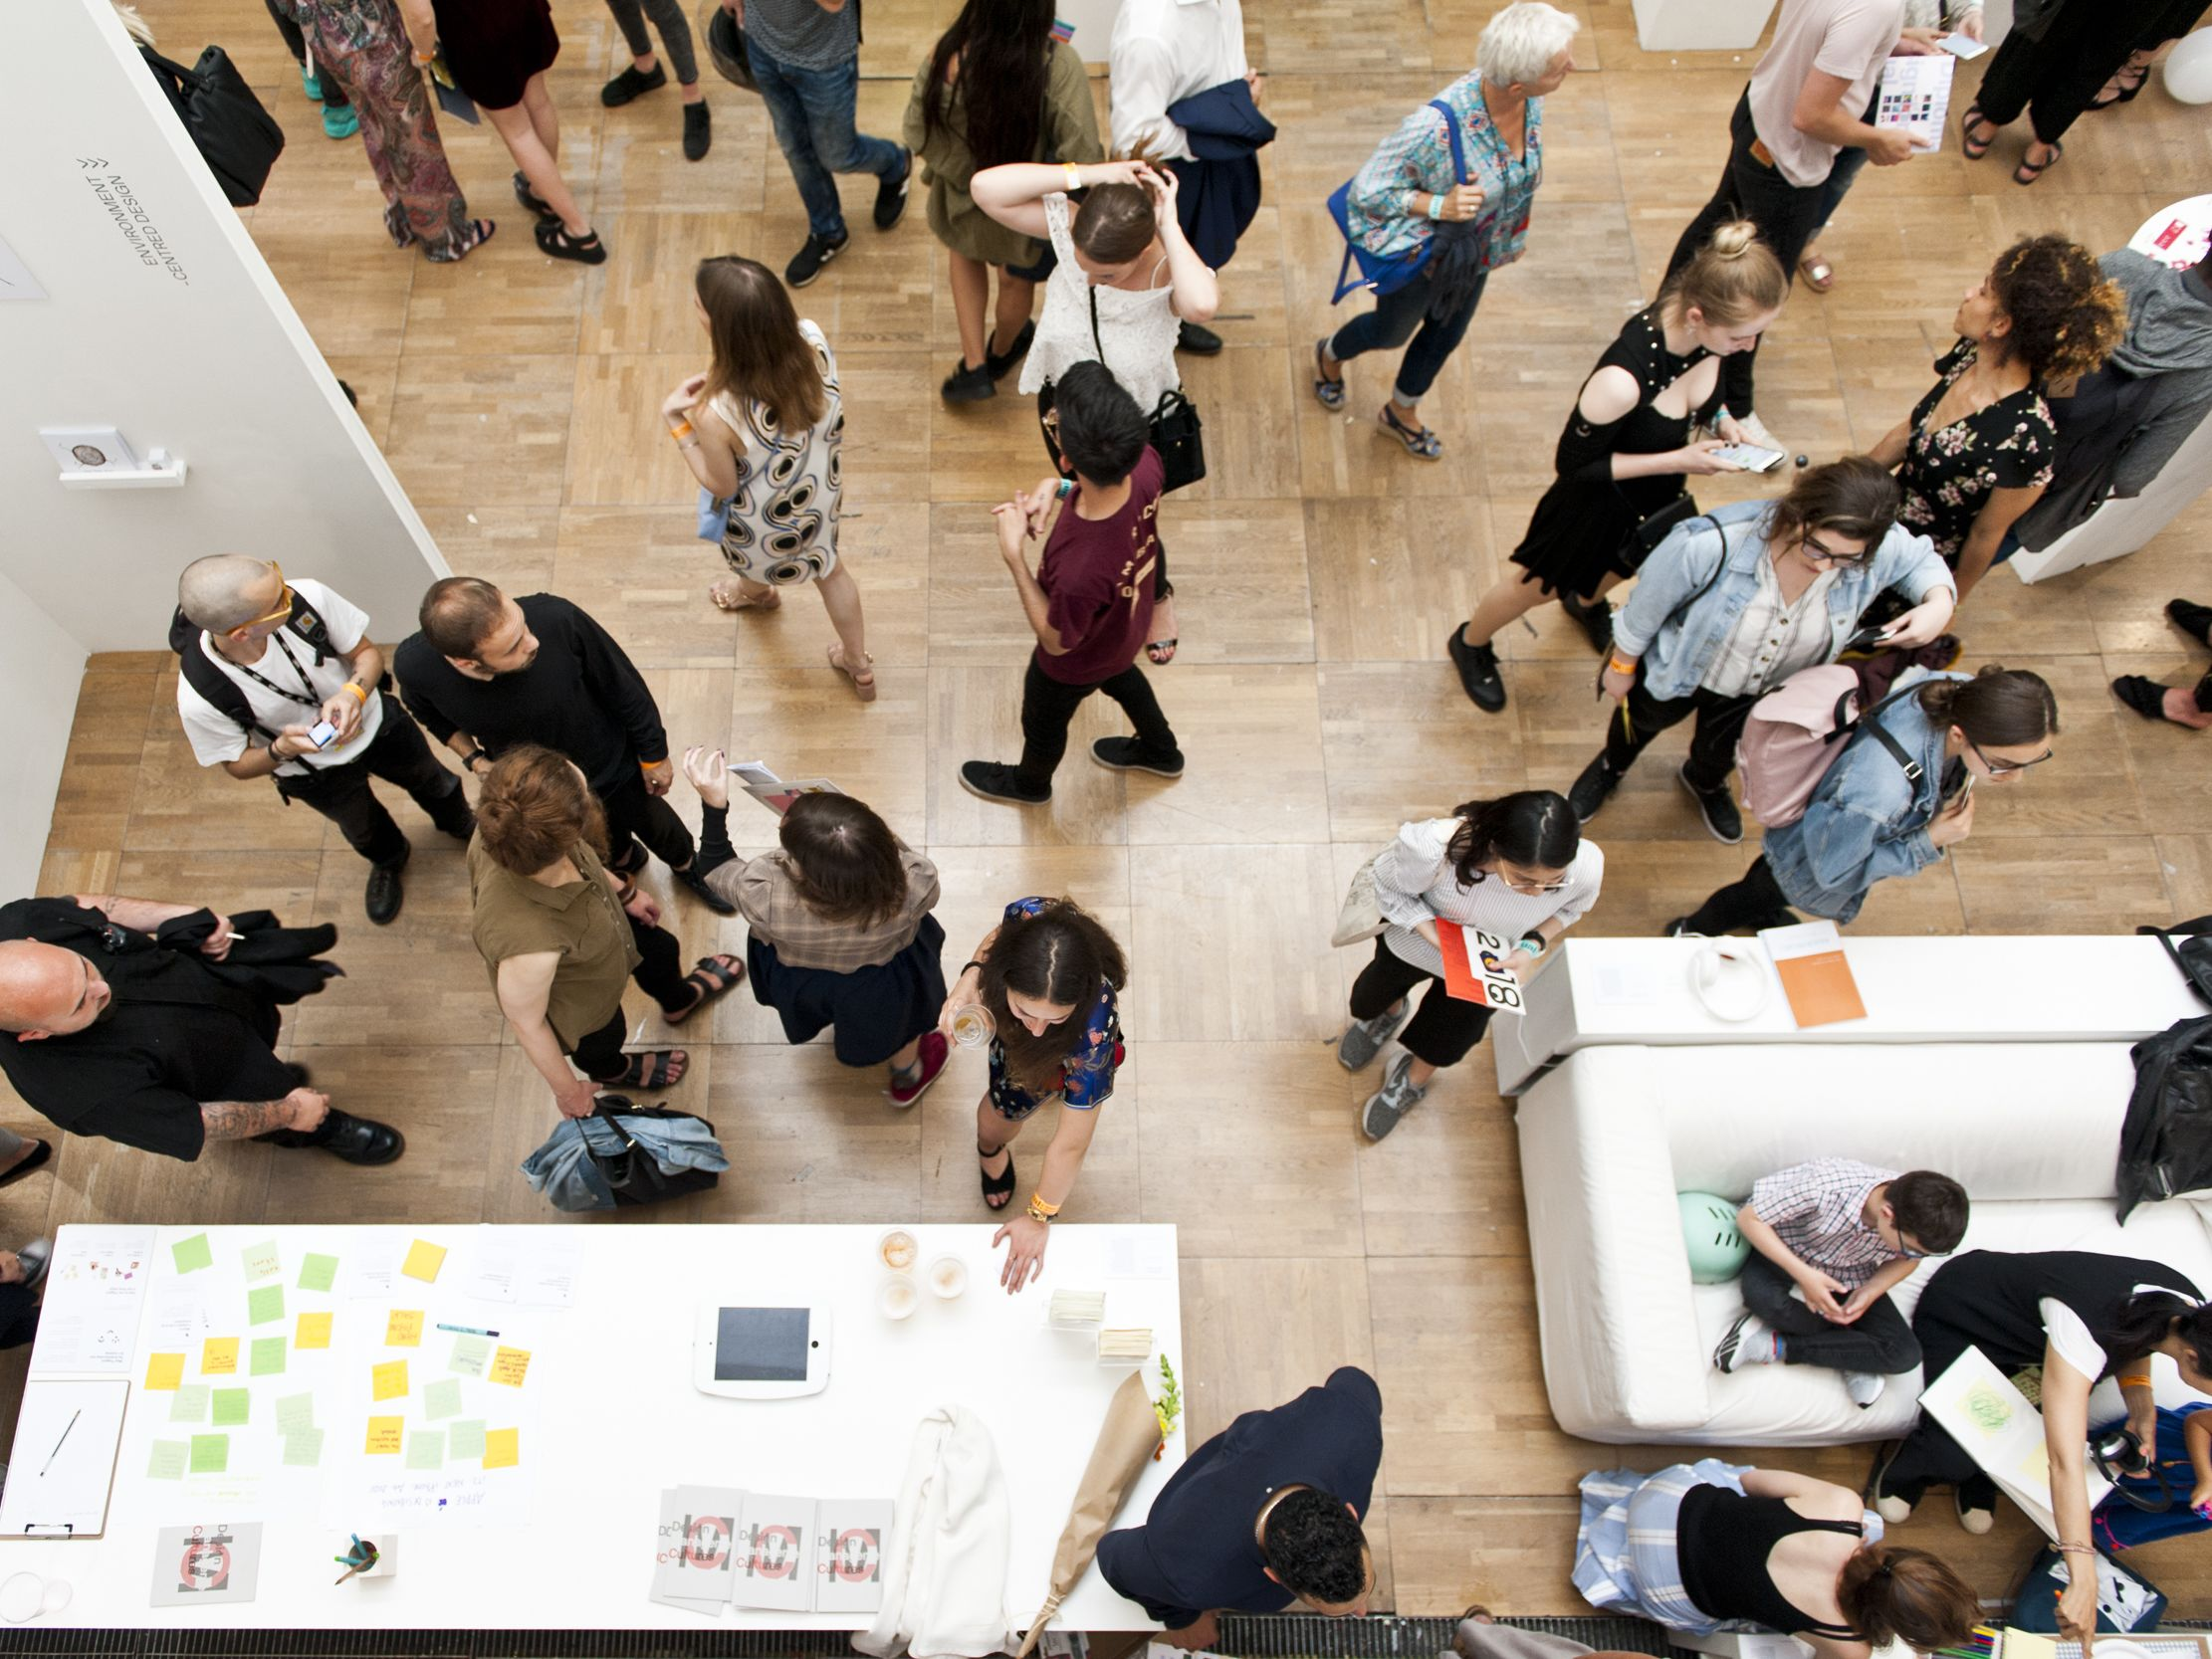 A bird-eye-view of a crowd of people gathered within a gallery space at LCC.